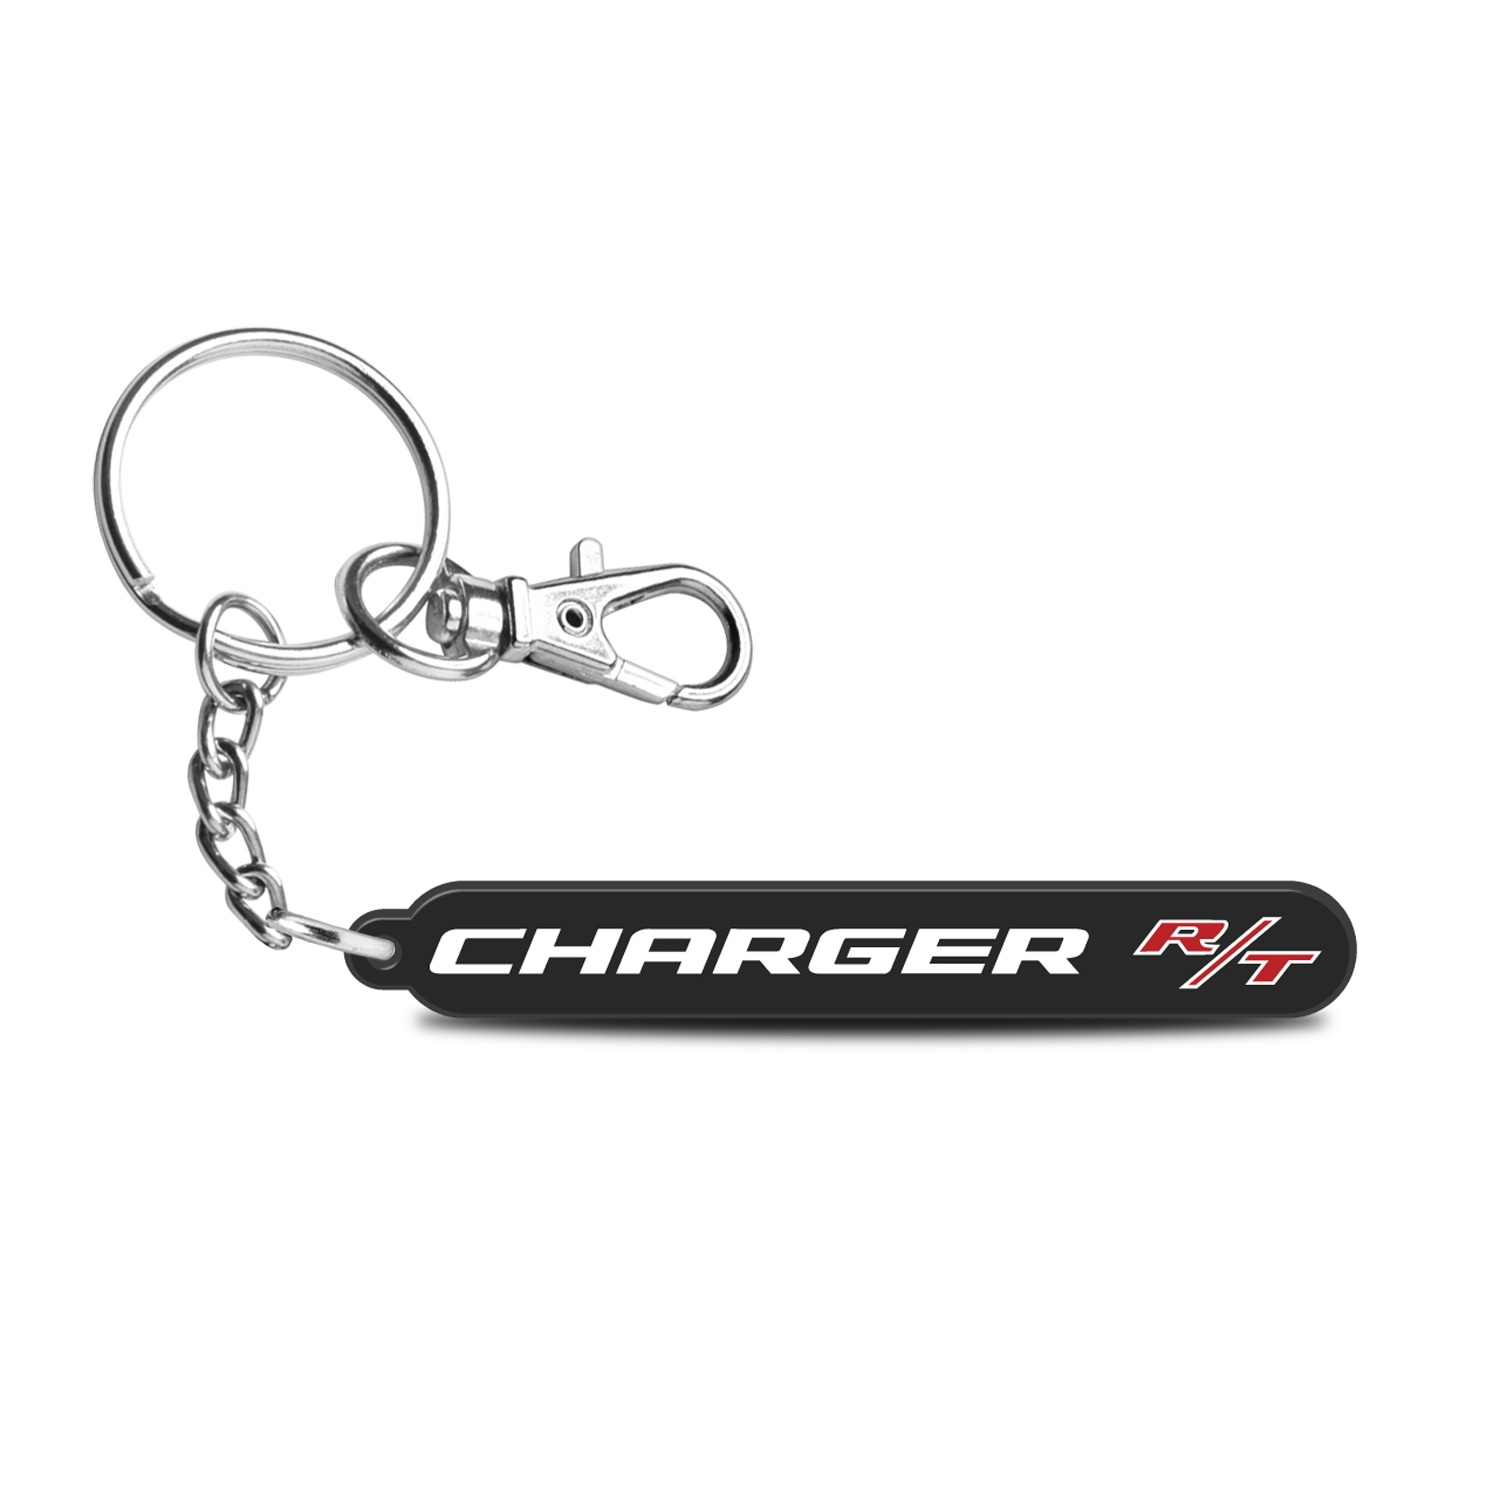 Dodge Charger R/T Custom Laser Cut with UV Full-Color Printing Acrylic Charm Key Chain